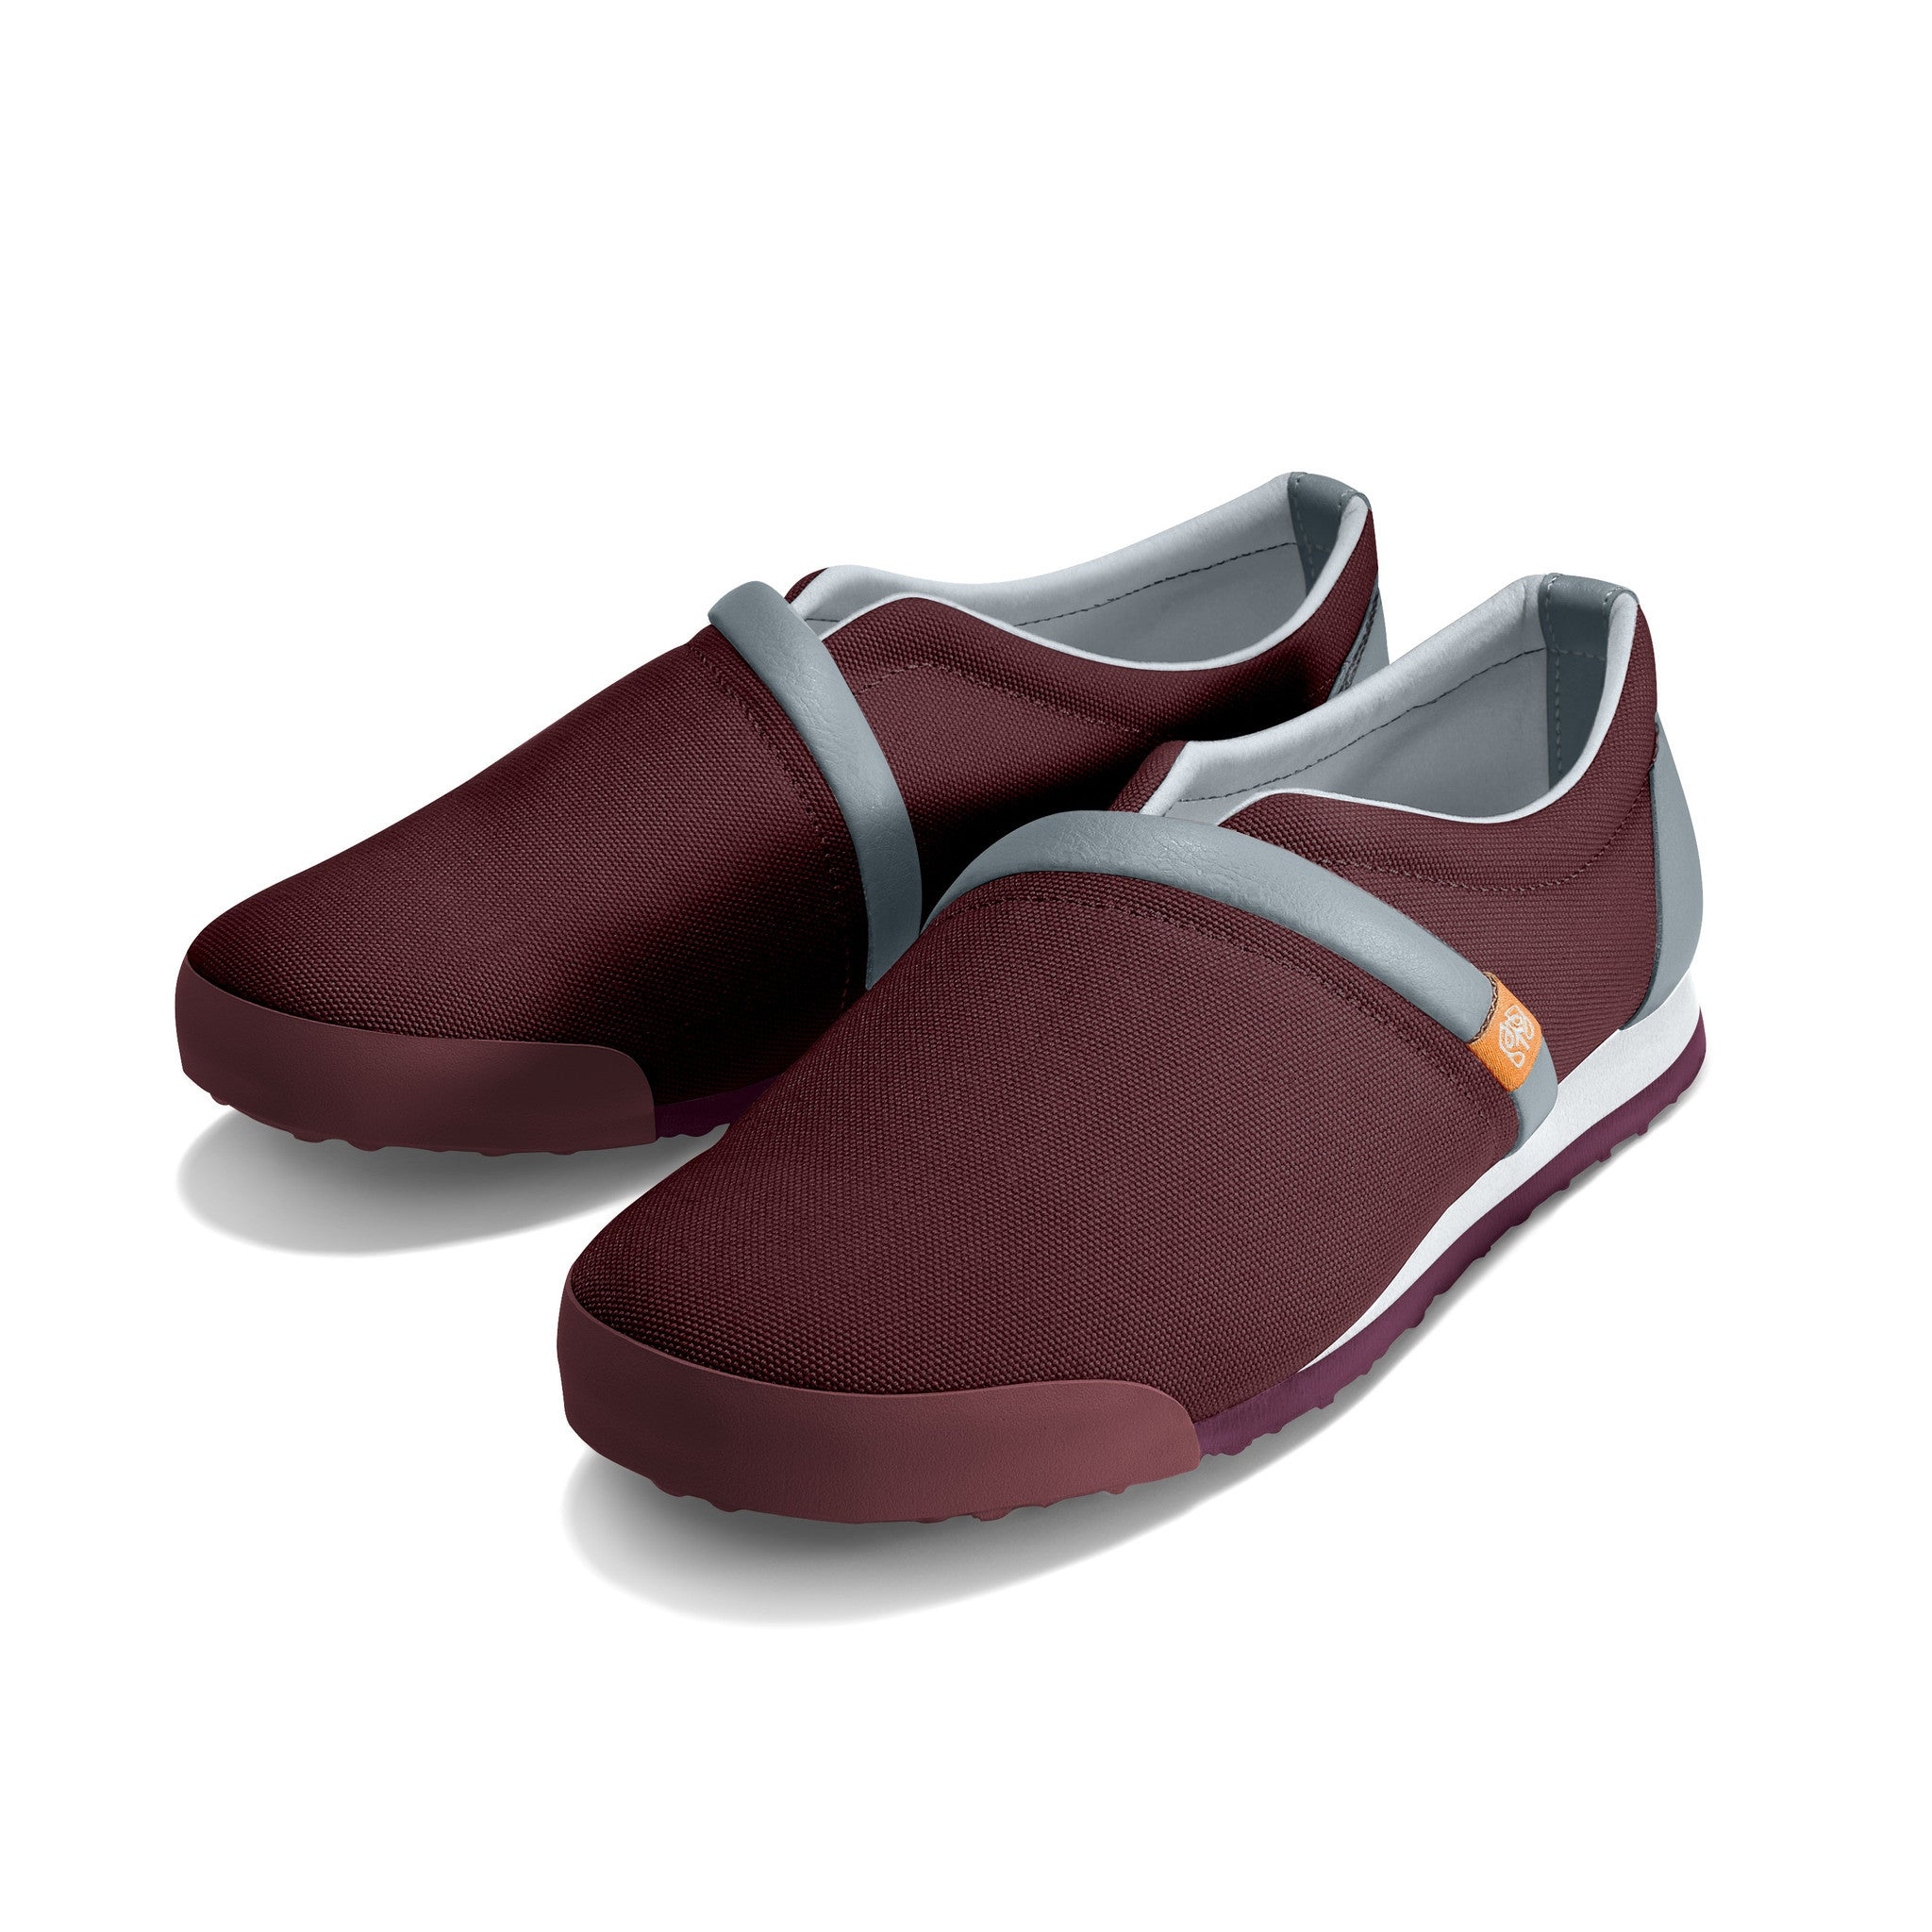 Cabernet - Common Ground Footwear Shoes Left Perspective View